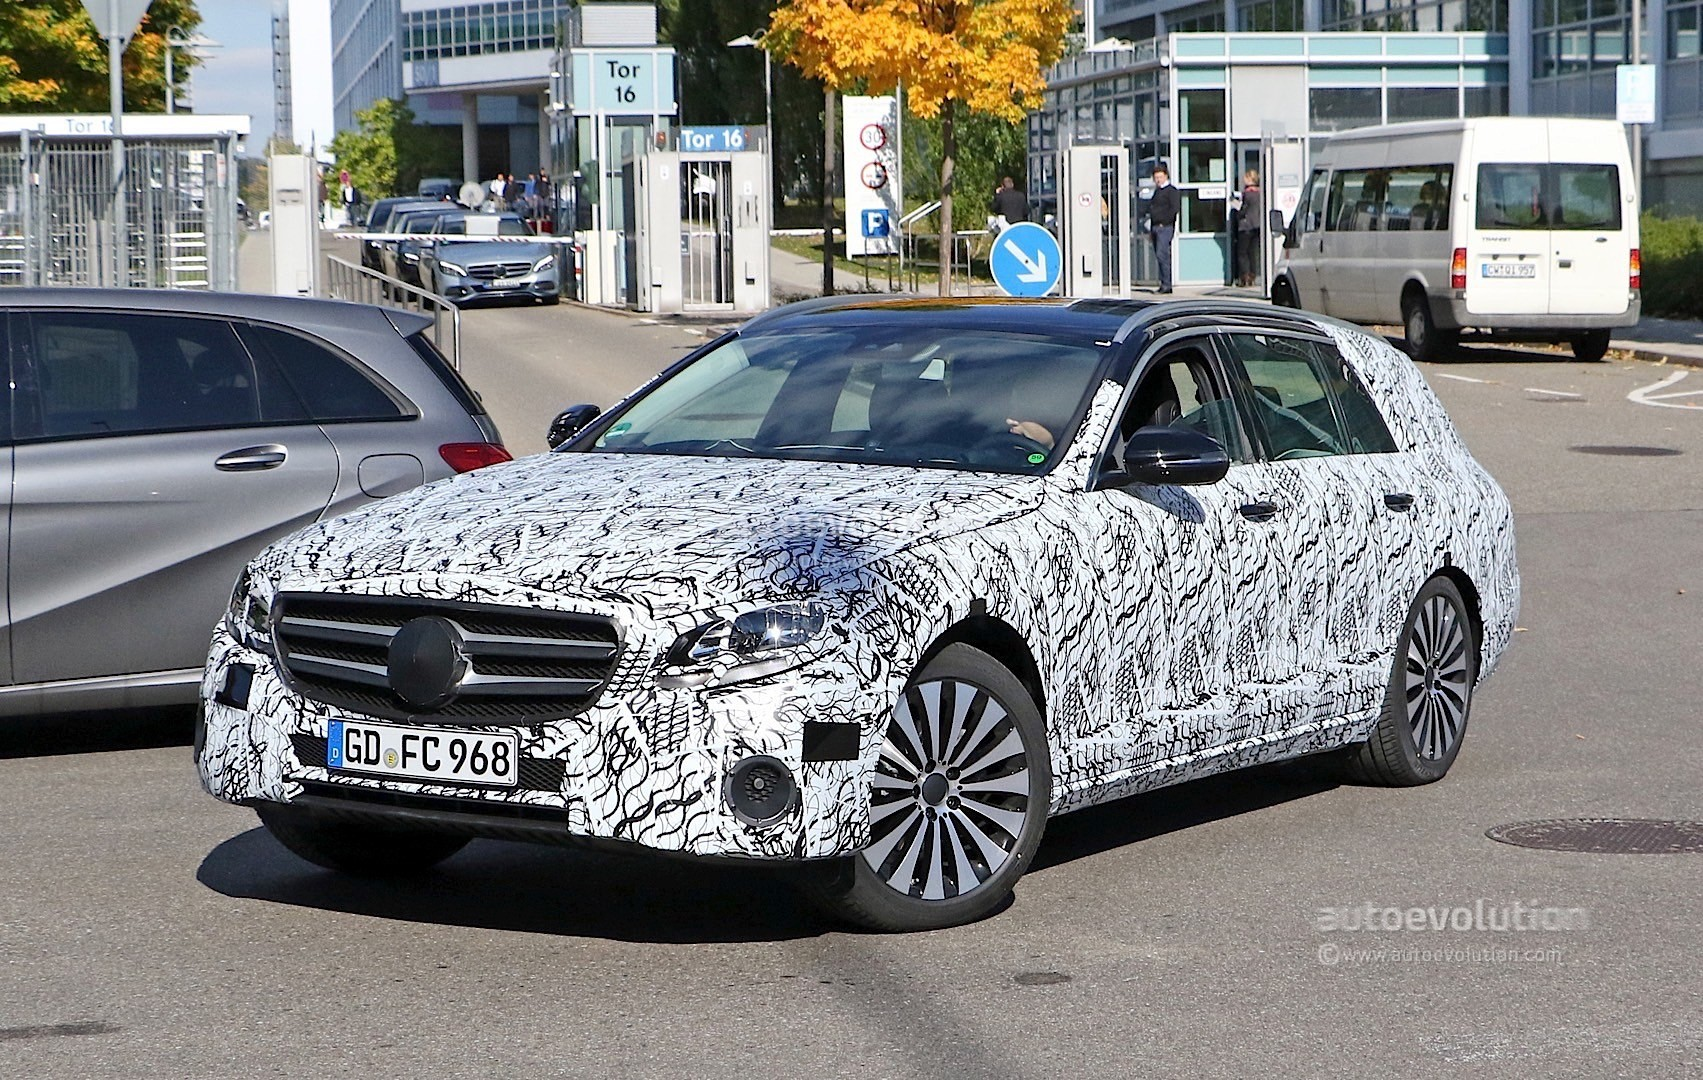 2017 mercedes benz e class interior revealed in latest spyshots autoevolution. Black Bedroom Furniture Sets. Home Design Ideas